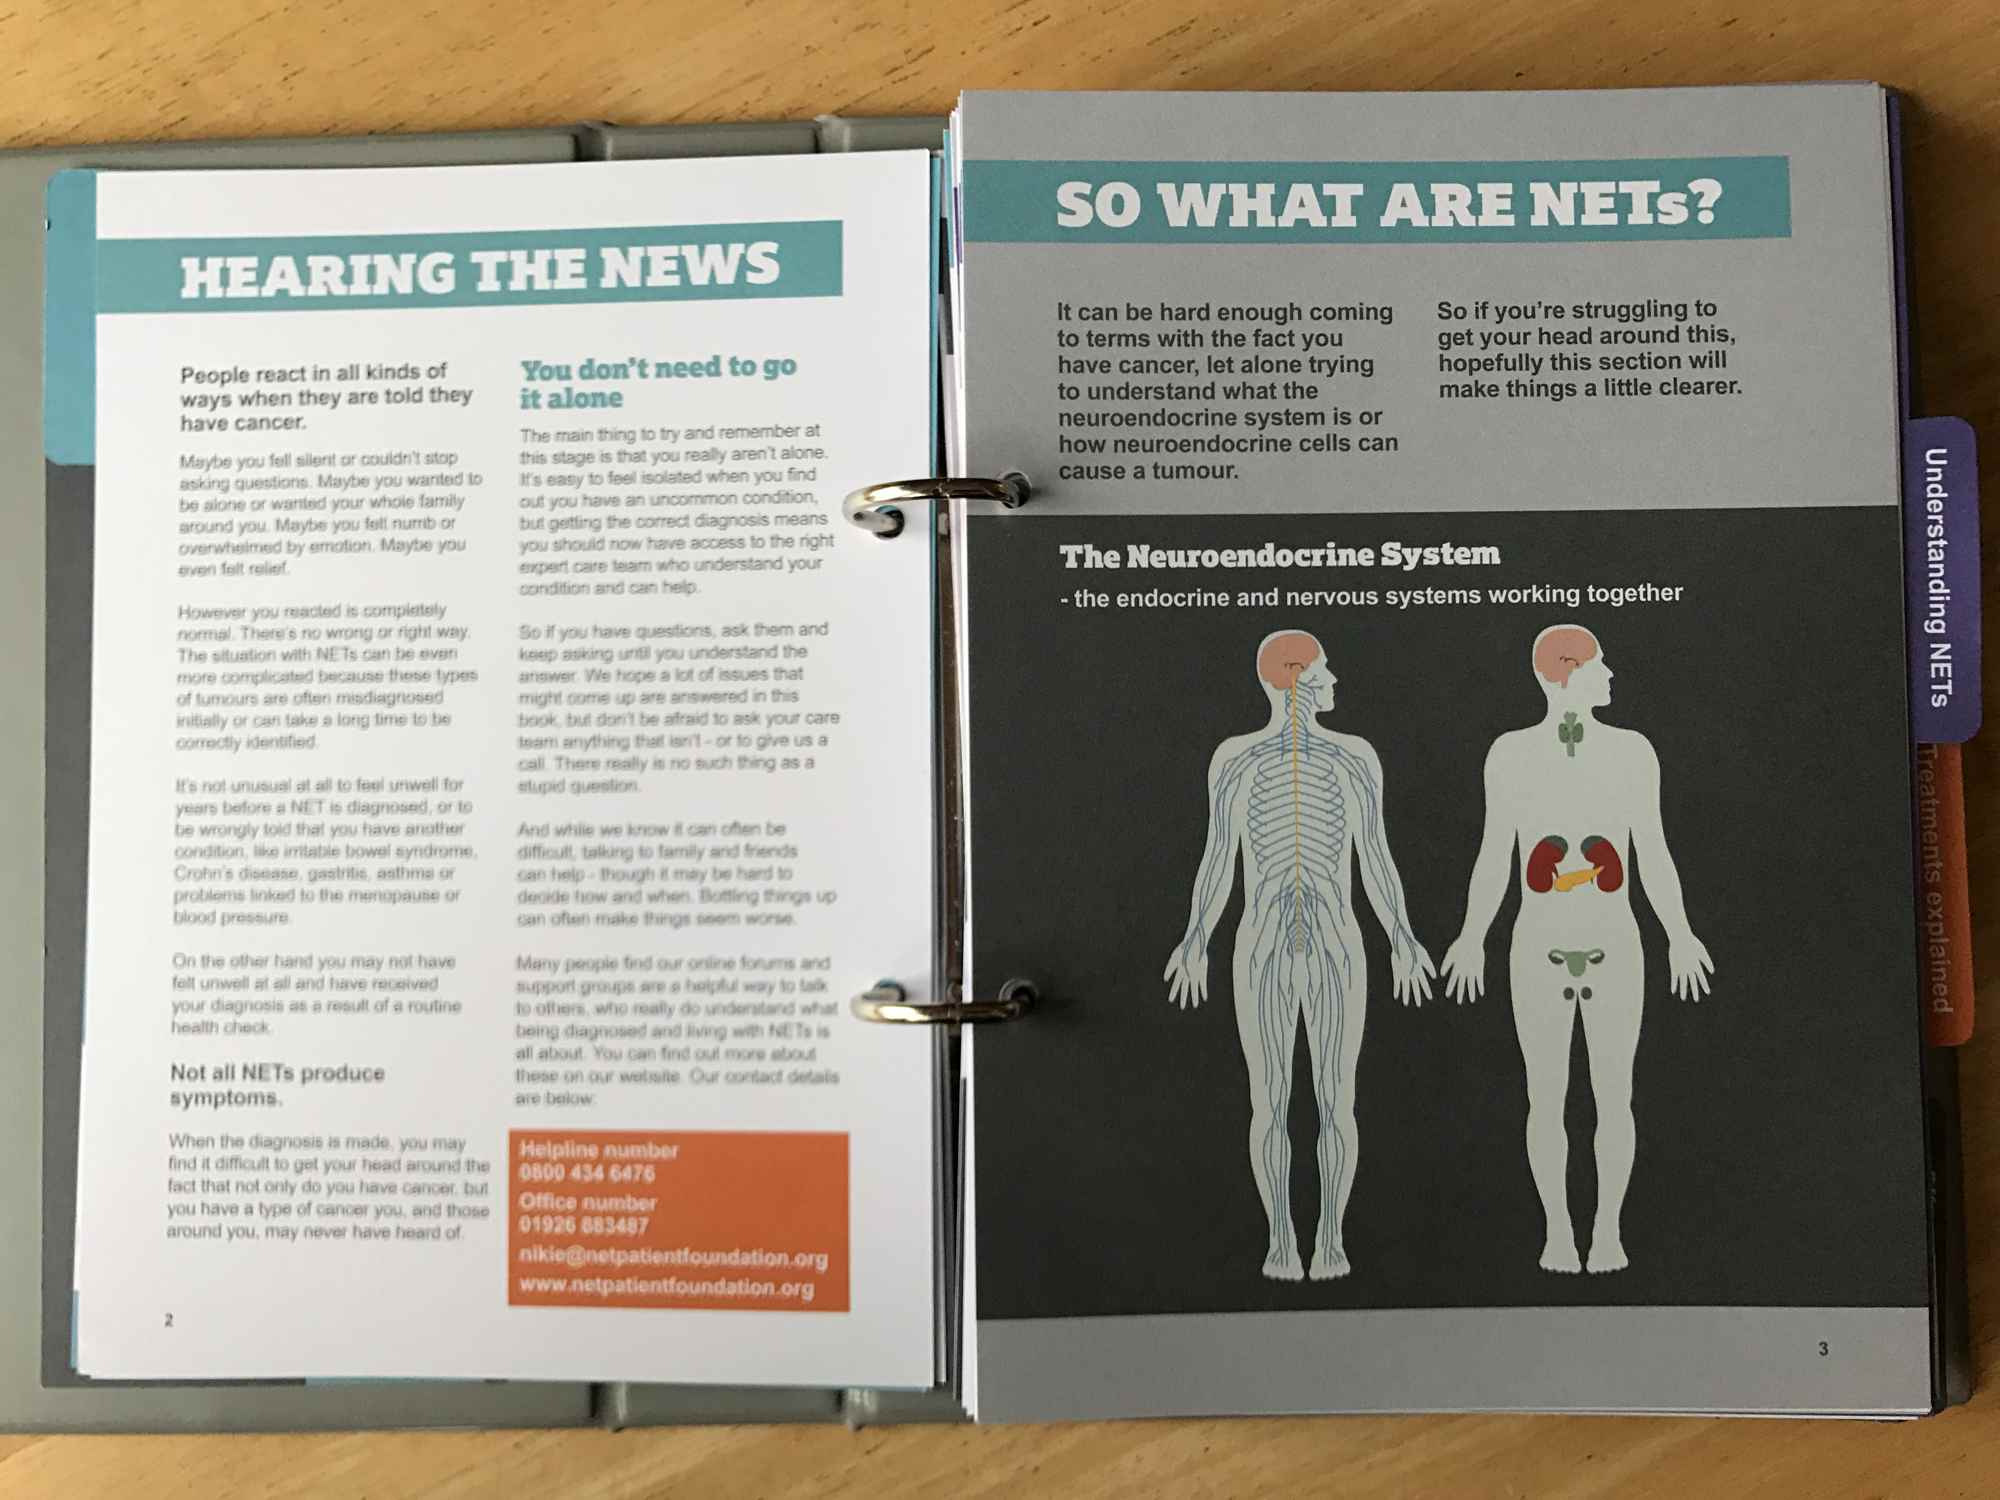 A typical spread explaining the nature of little-known neuroendocrine cancers.